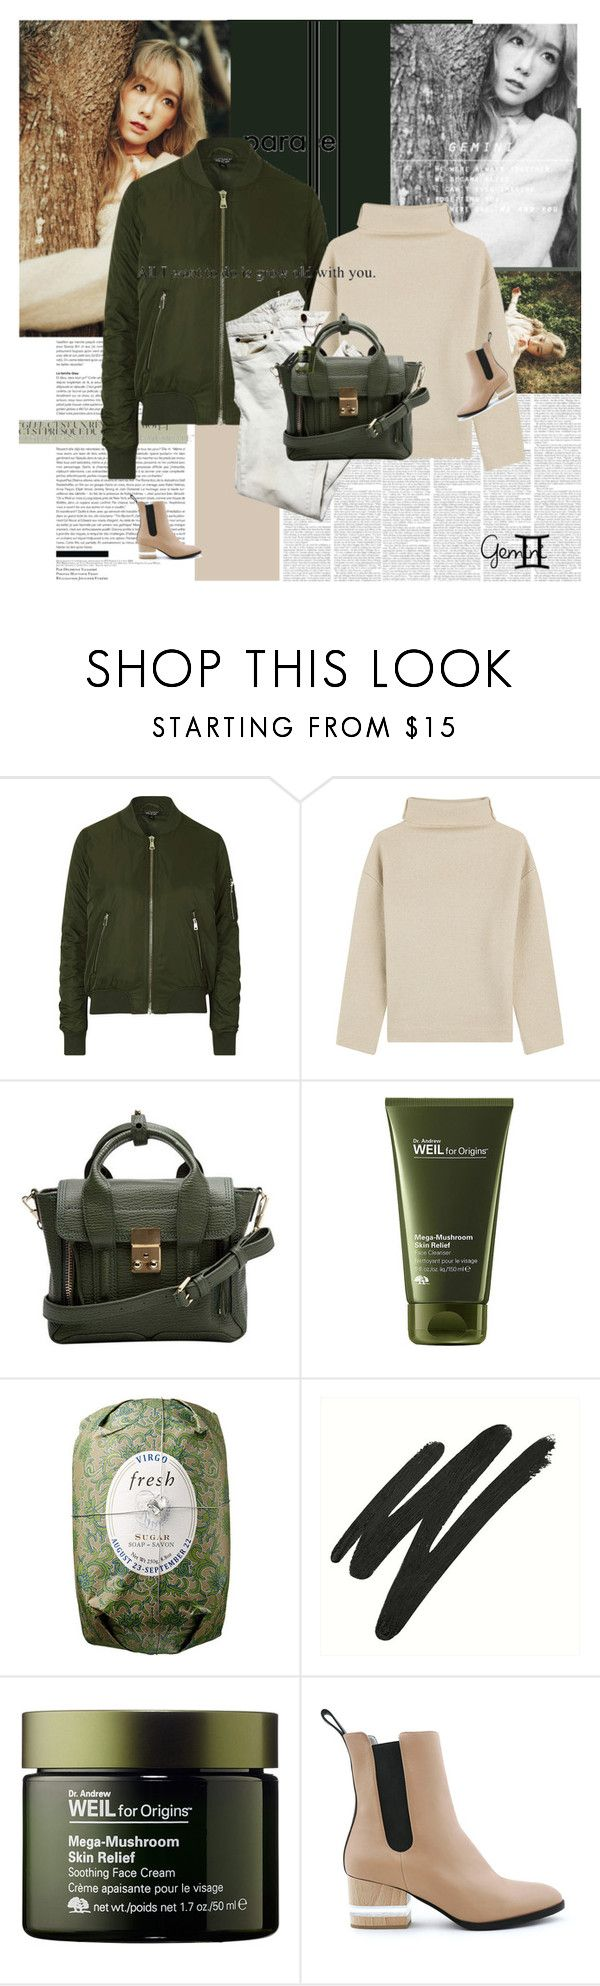 """쌍둥이자리 - Gemini"" by e-laysian ❤ liked on Polyvore featuring Metropolis, Topshop, Étoile Isabel Marant, 3.1 Phillip Lim, Origins, Fresh, Vincent Longo and Dear Frances"